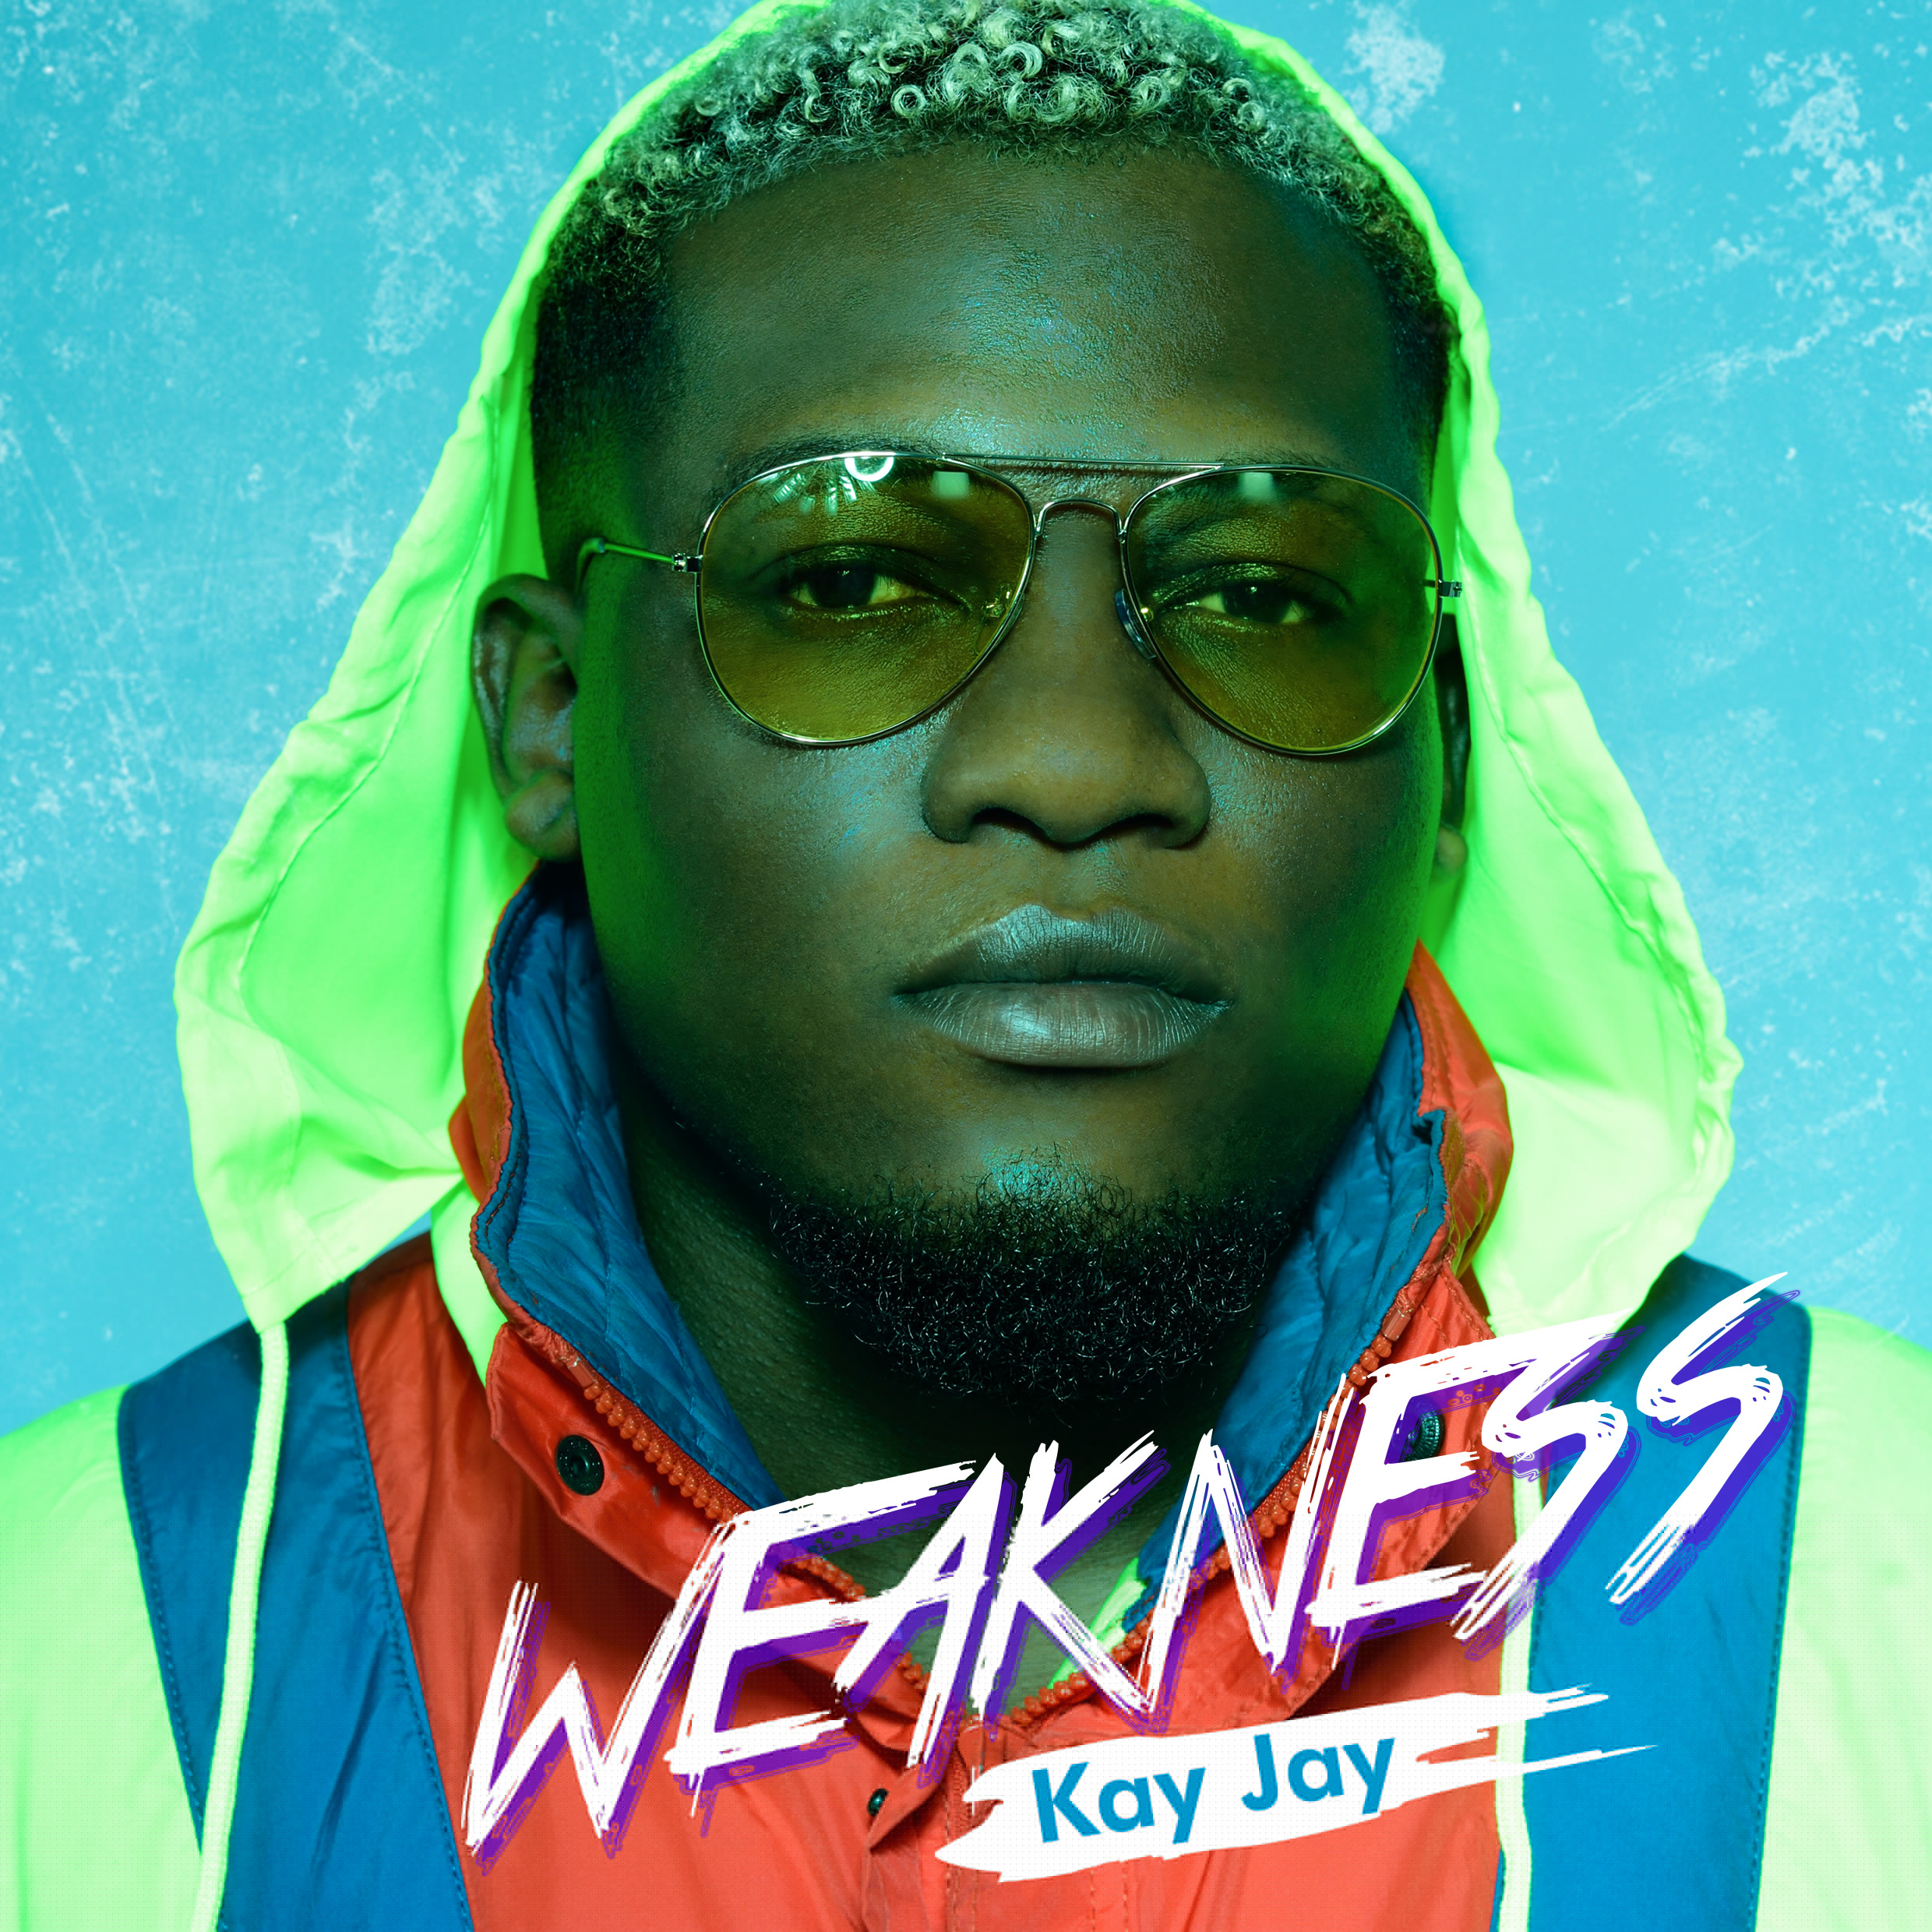 New Music; Kay Jay (Weakness)